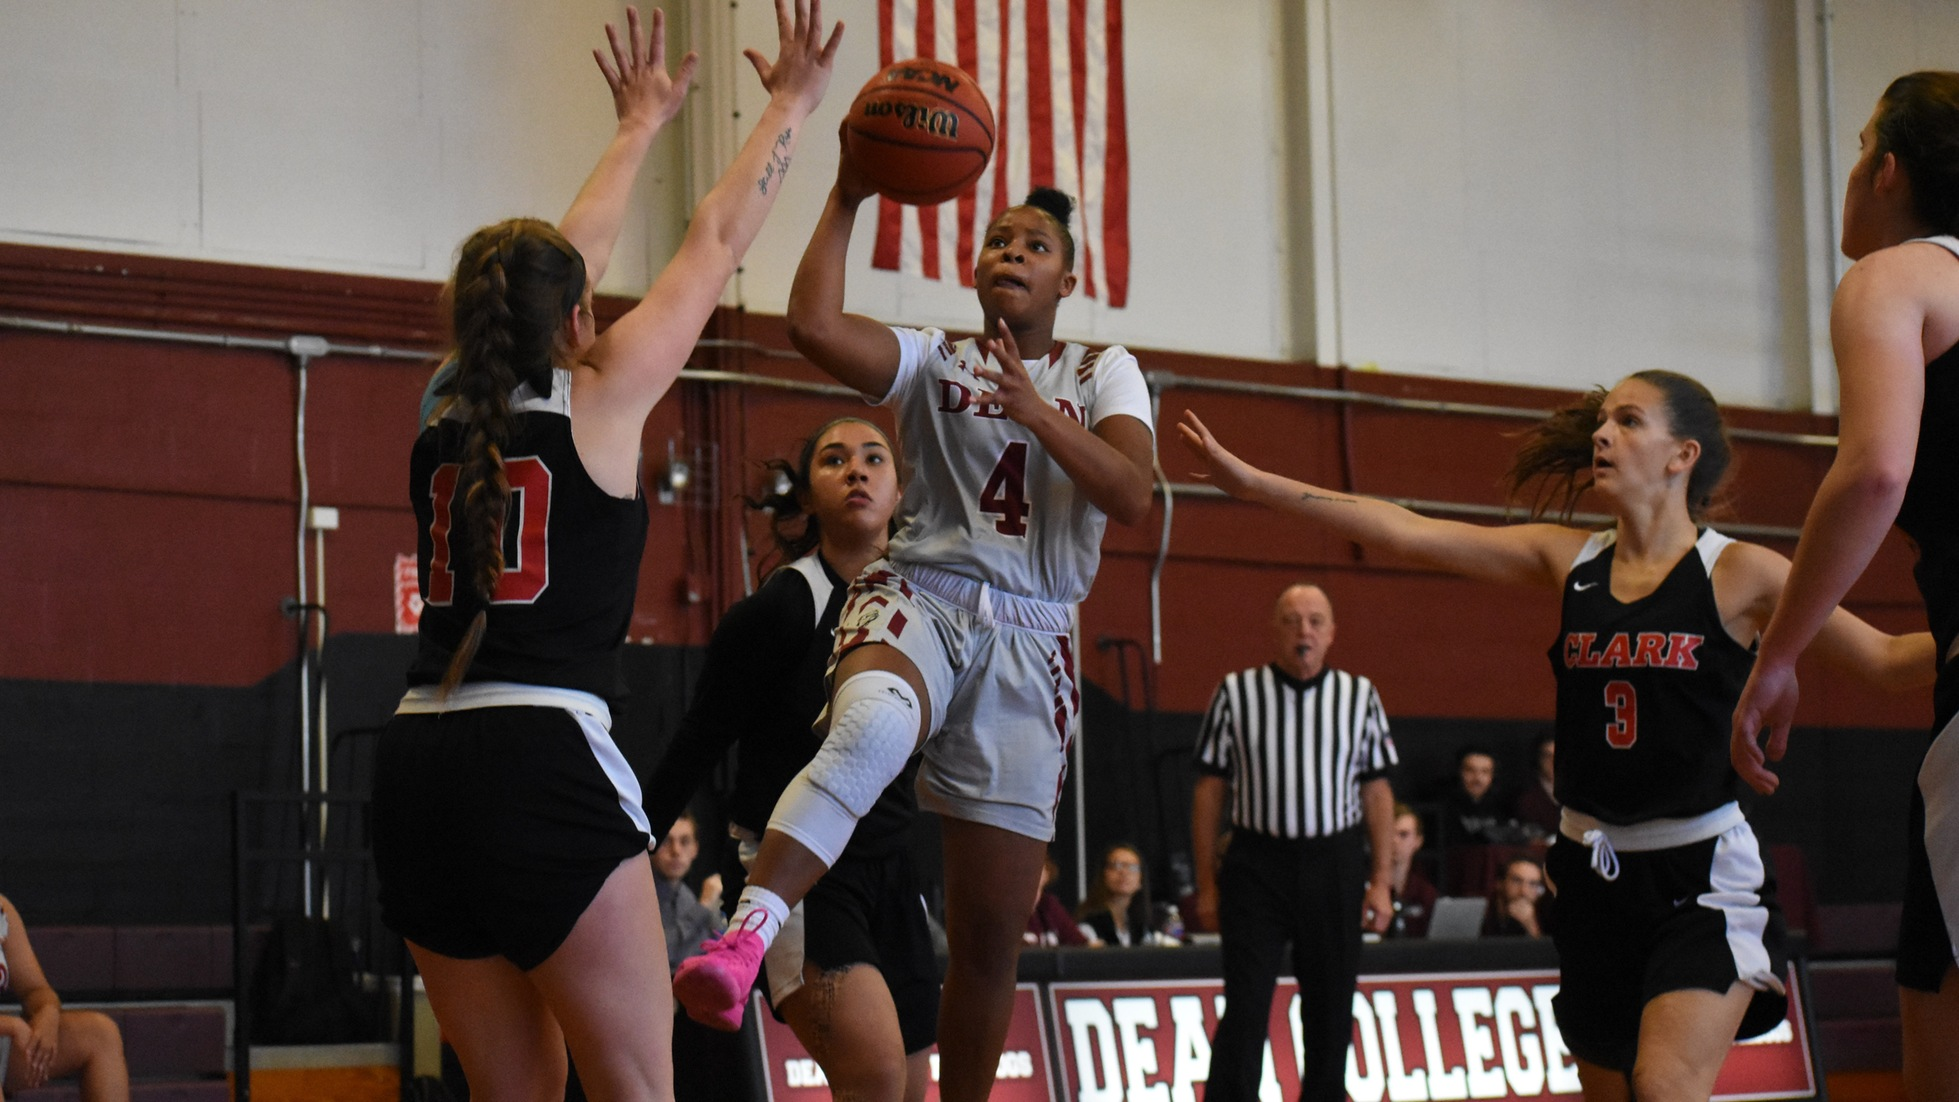 Women's Basketball Powers Past Clark, 75-66